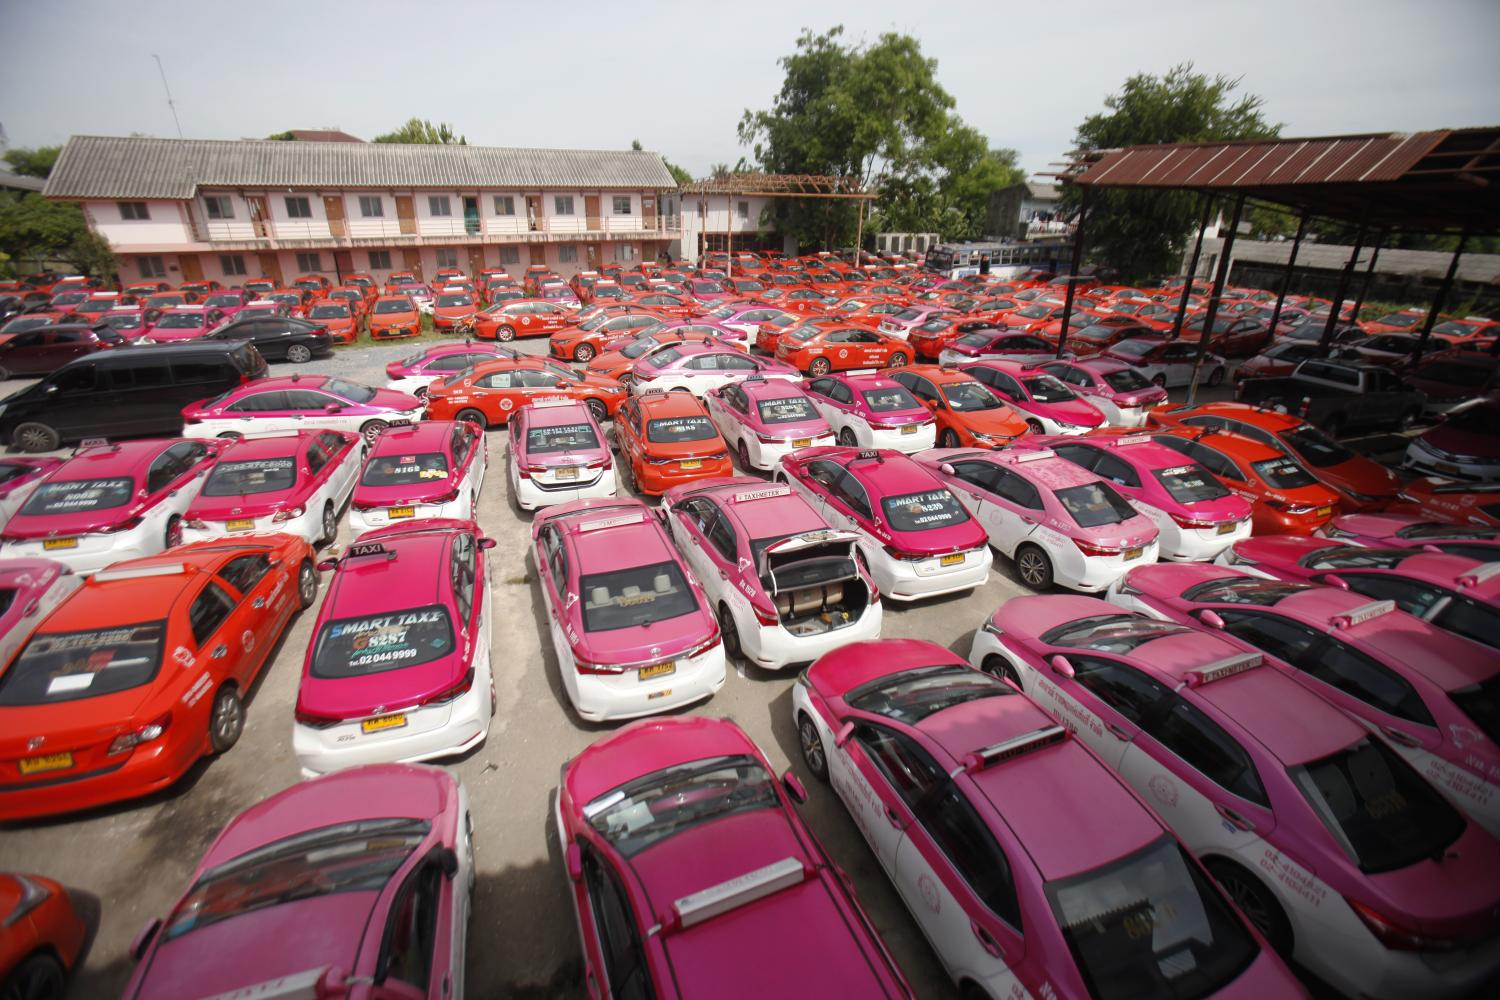 A Bangkok parking lot filled with taxis owned by cooperatives, as 2,000 cars were returned by drivers who cannot afford the rental fees. (Photo: Nutthawat Wicheanbut)